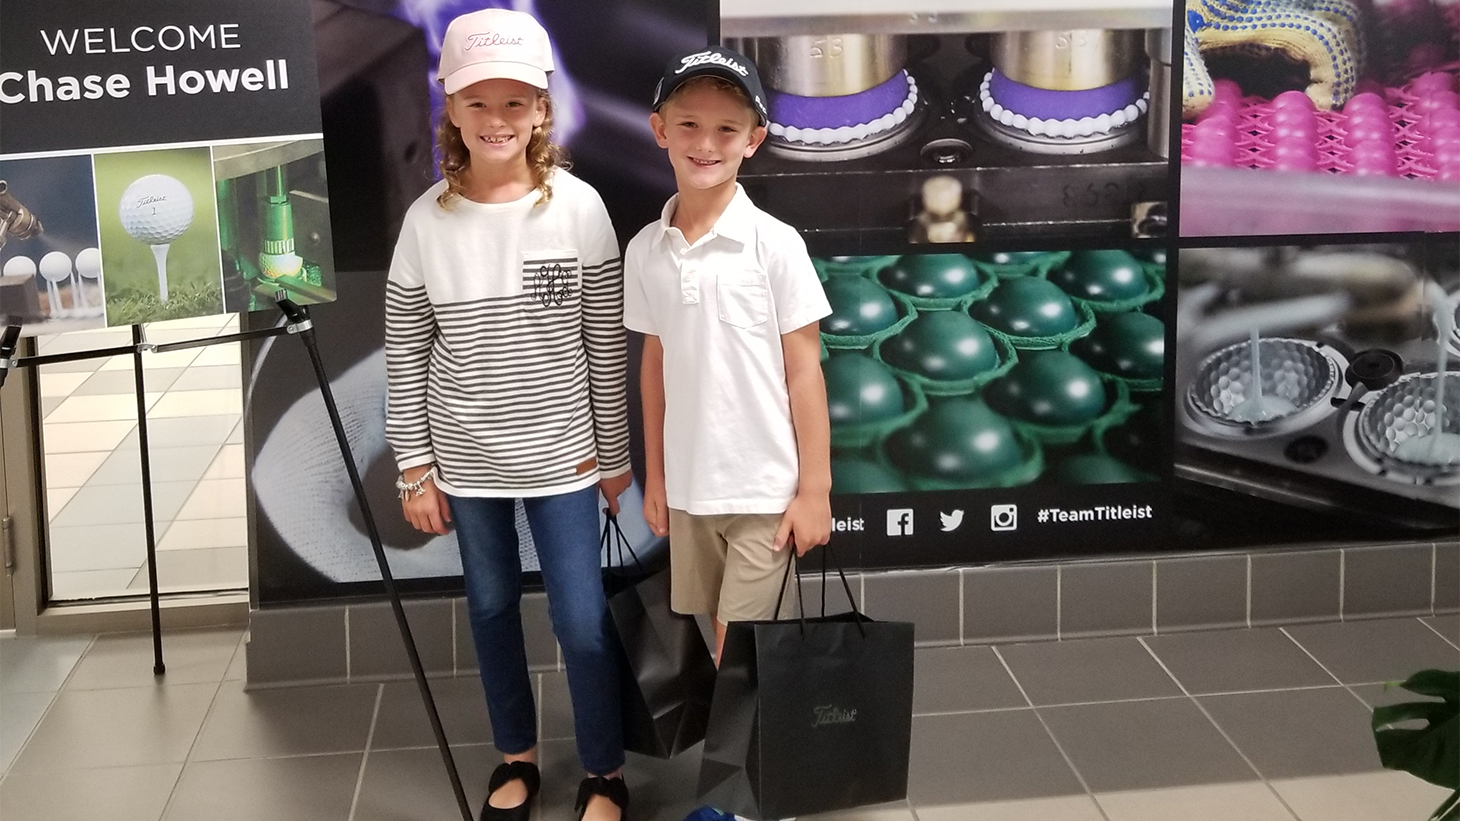 Ansley (left) and Chase Howell (right) at Titleist...